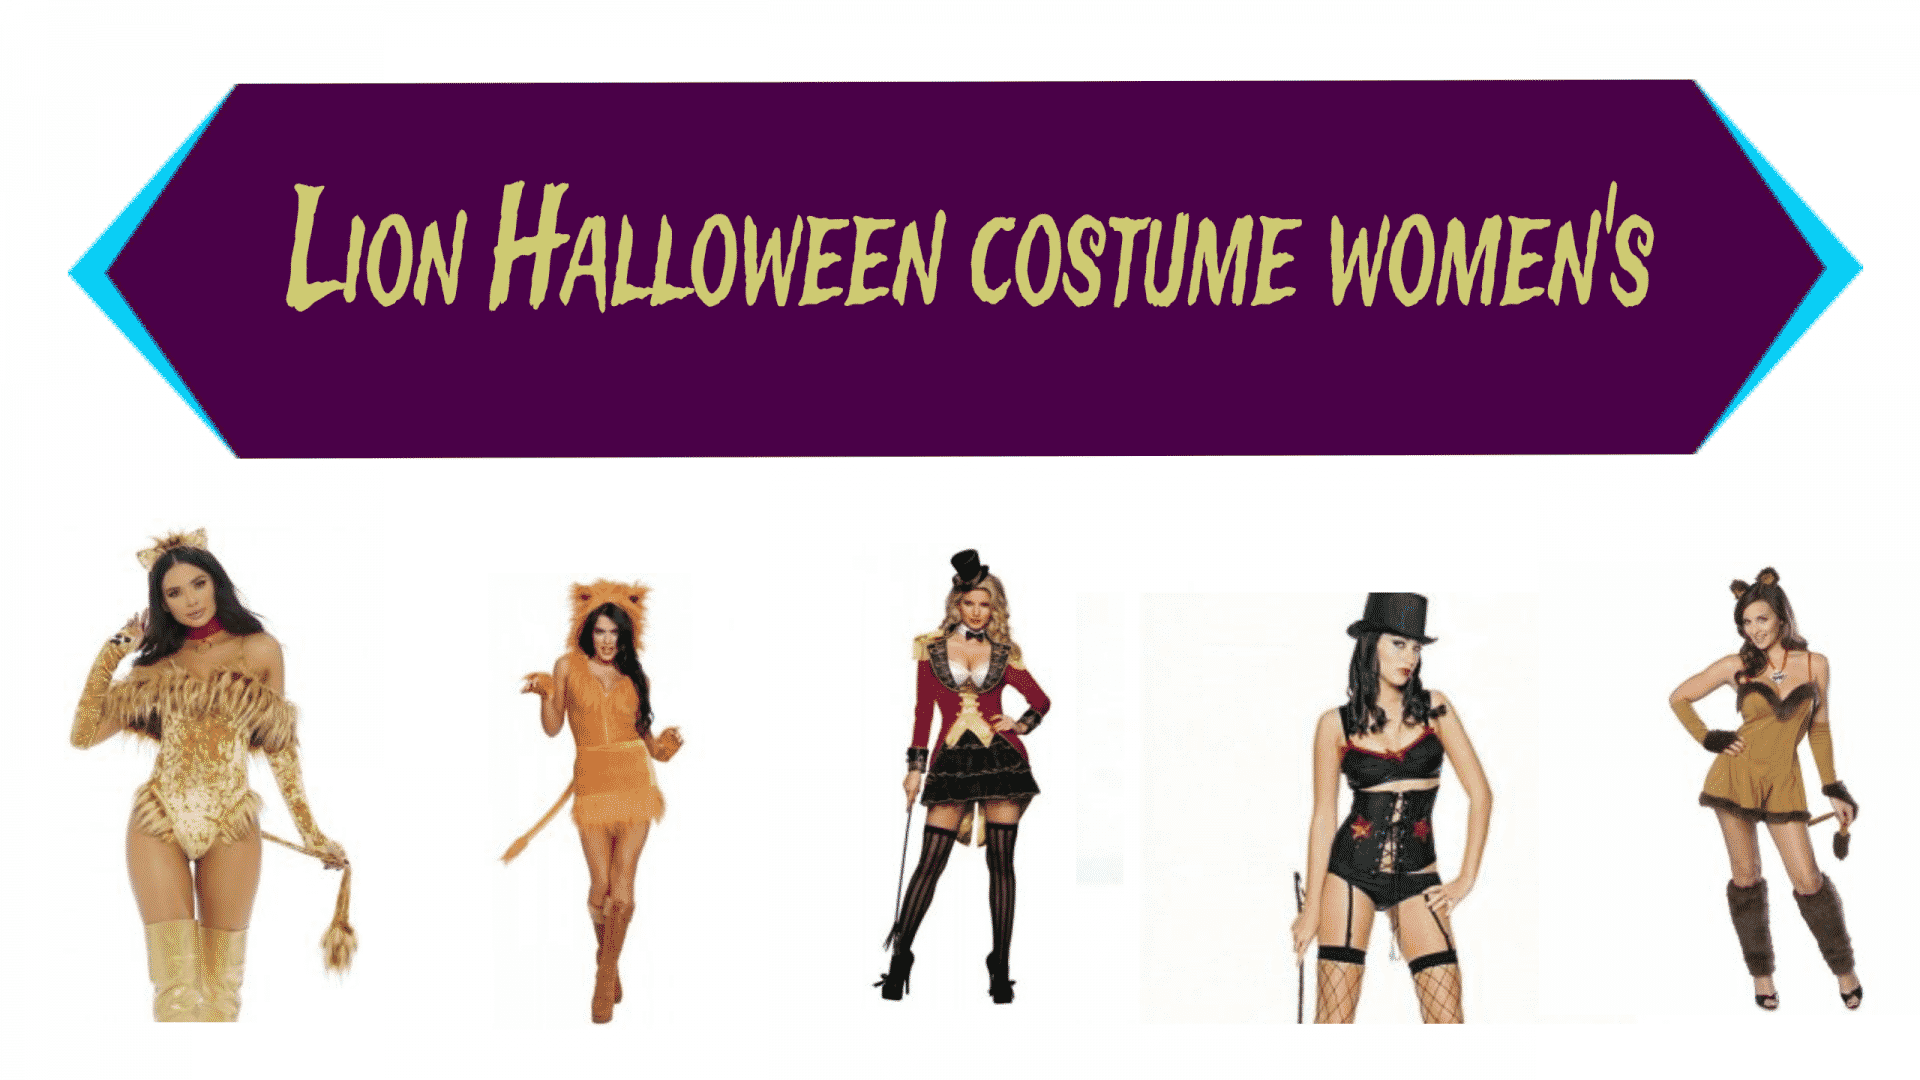 Lion Halloween costume women's